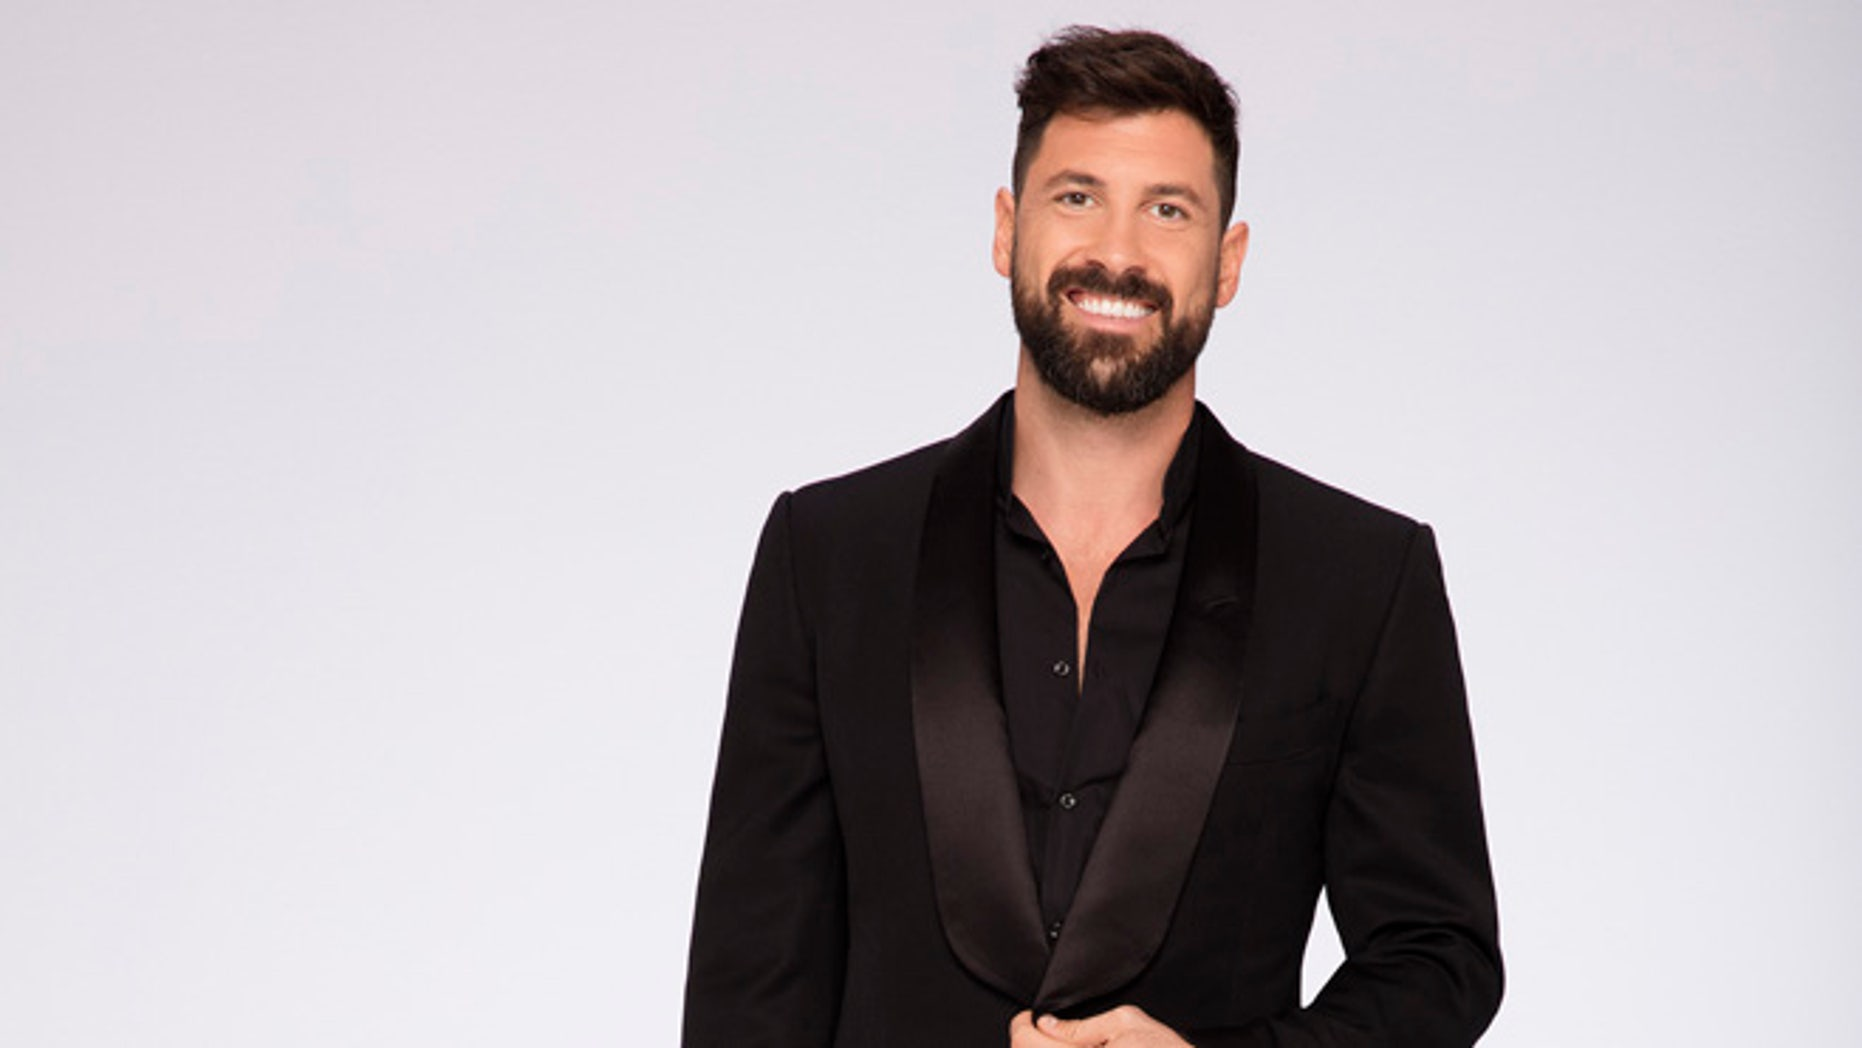 """Maksim Chmerkovskiy says he has no interest in returning to """"Dancing with the Stars"""" next season."""